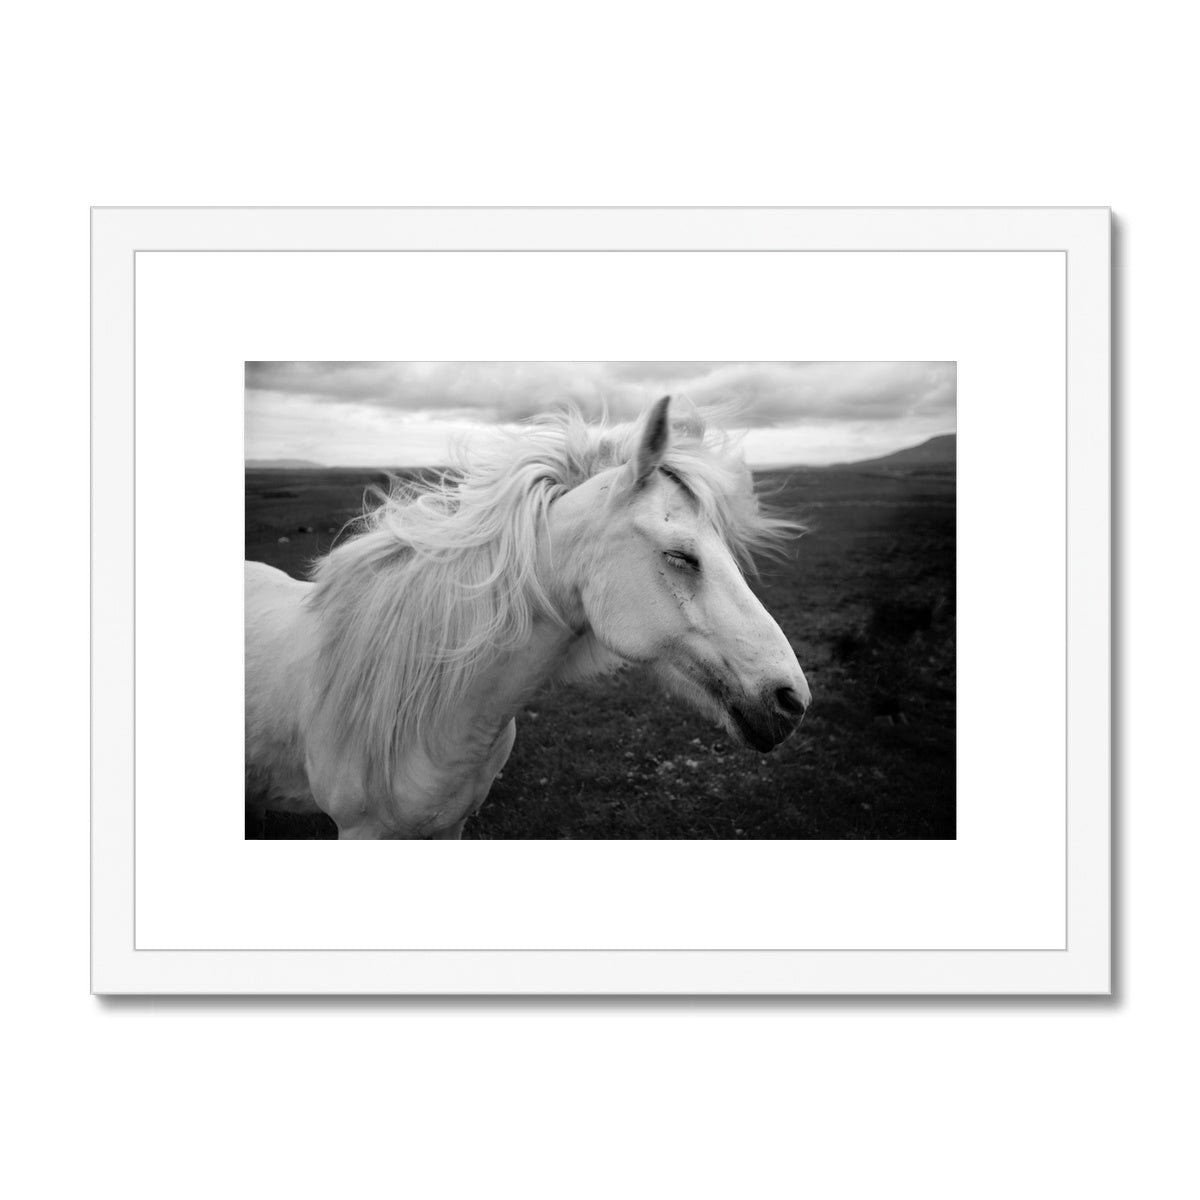 Enchanted - Framed & Mounted Print